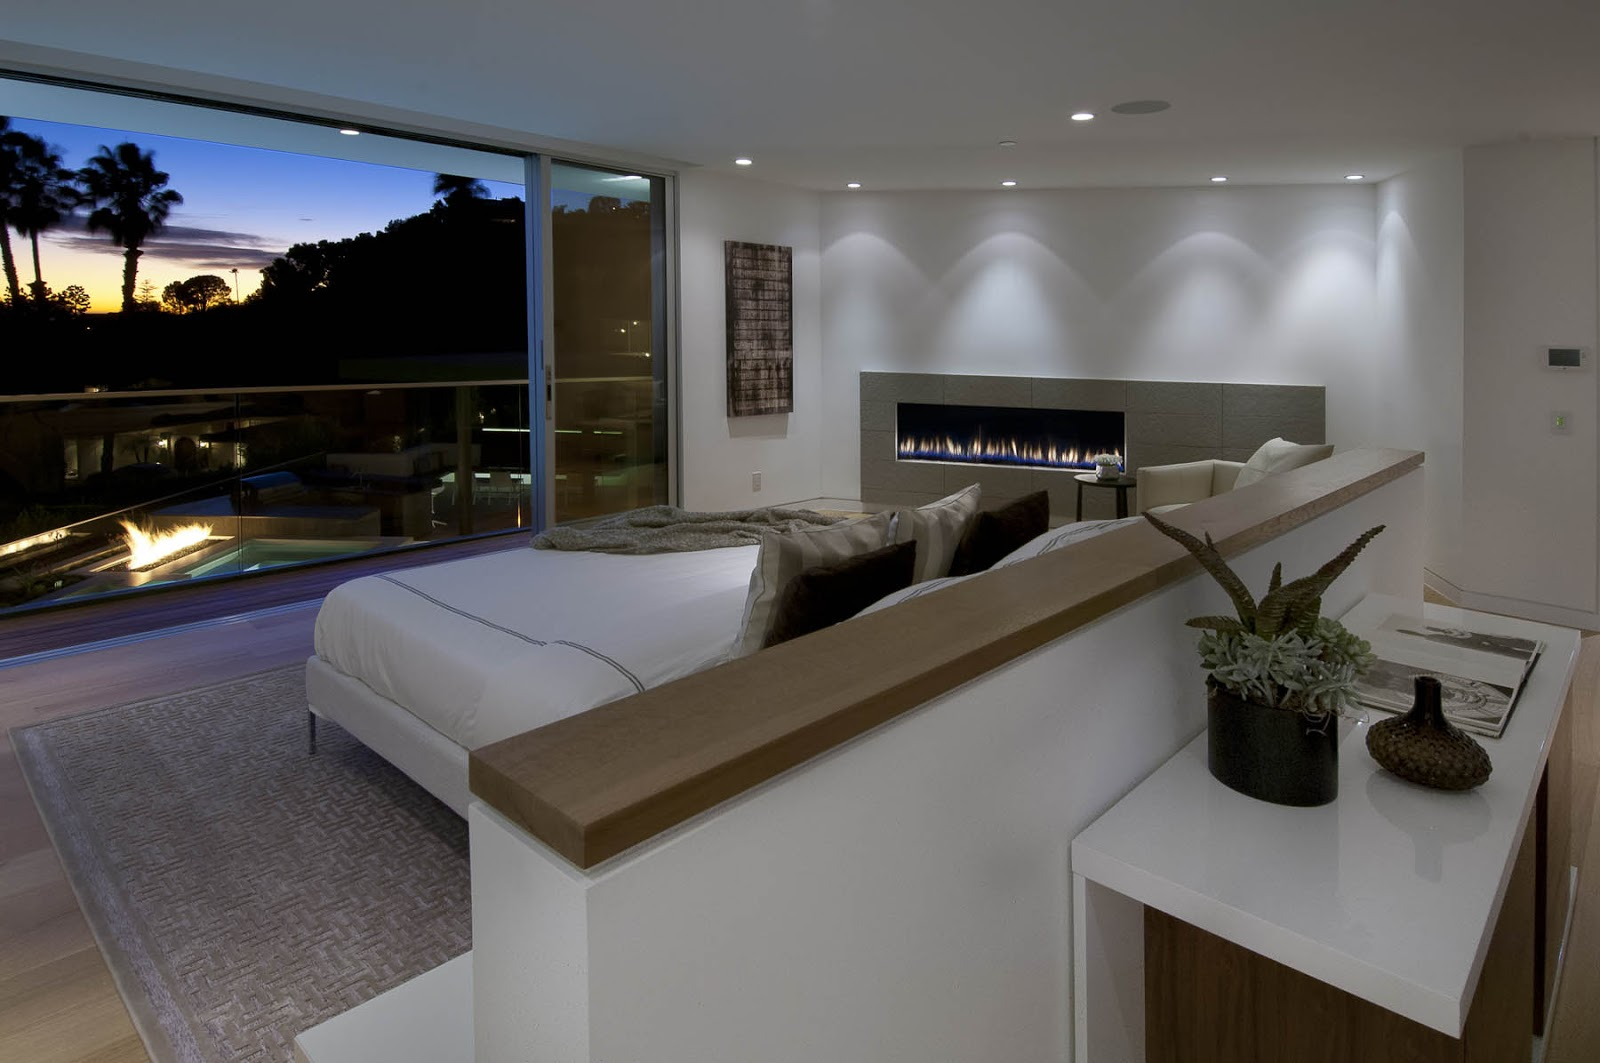 Modern Home Bedroom world of architecture: impressive modern home in hollywood hills